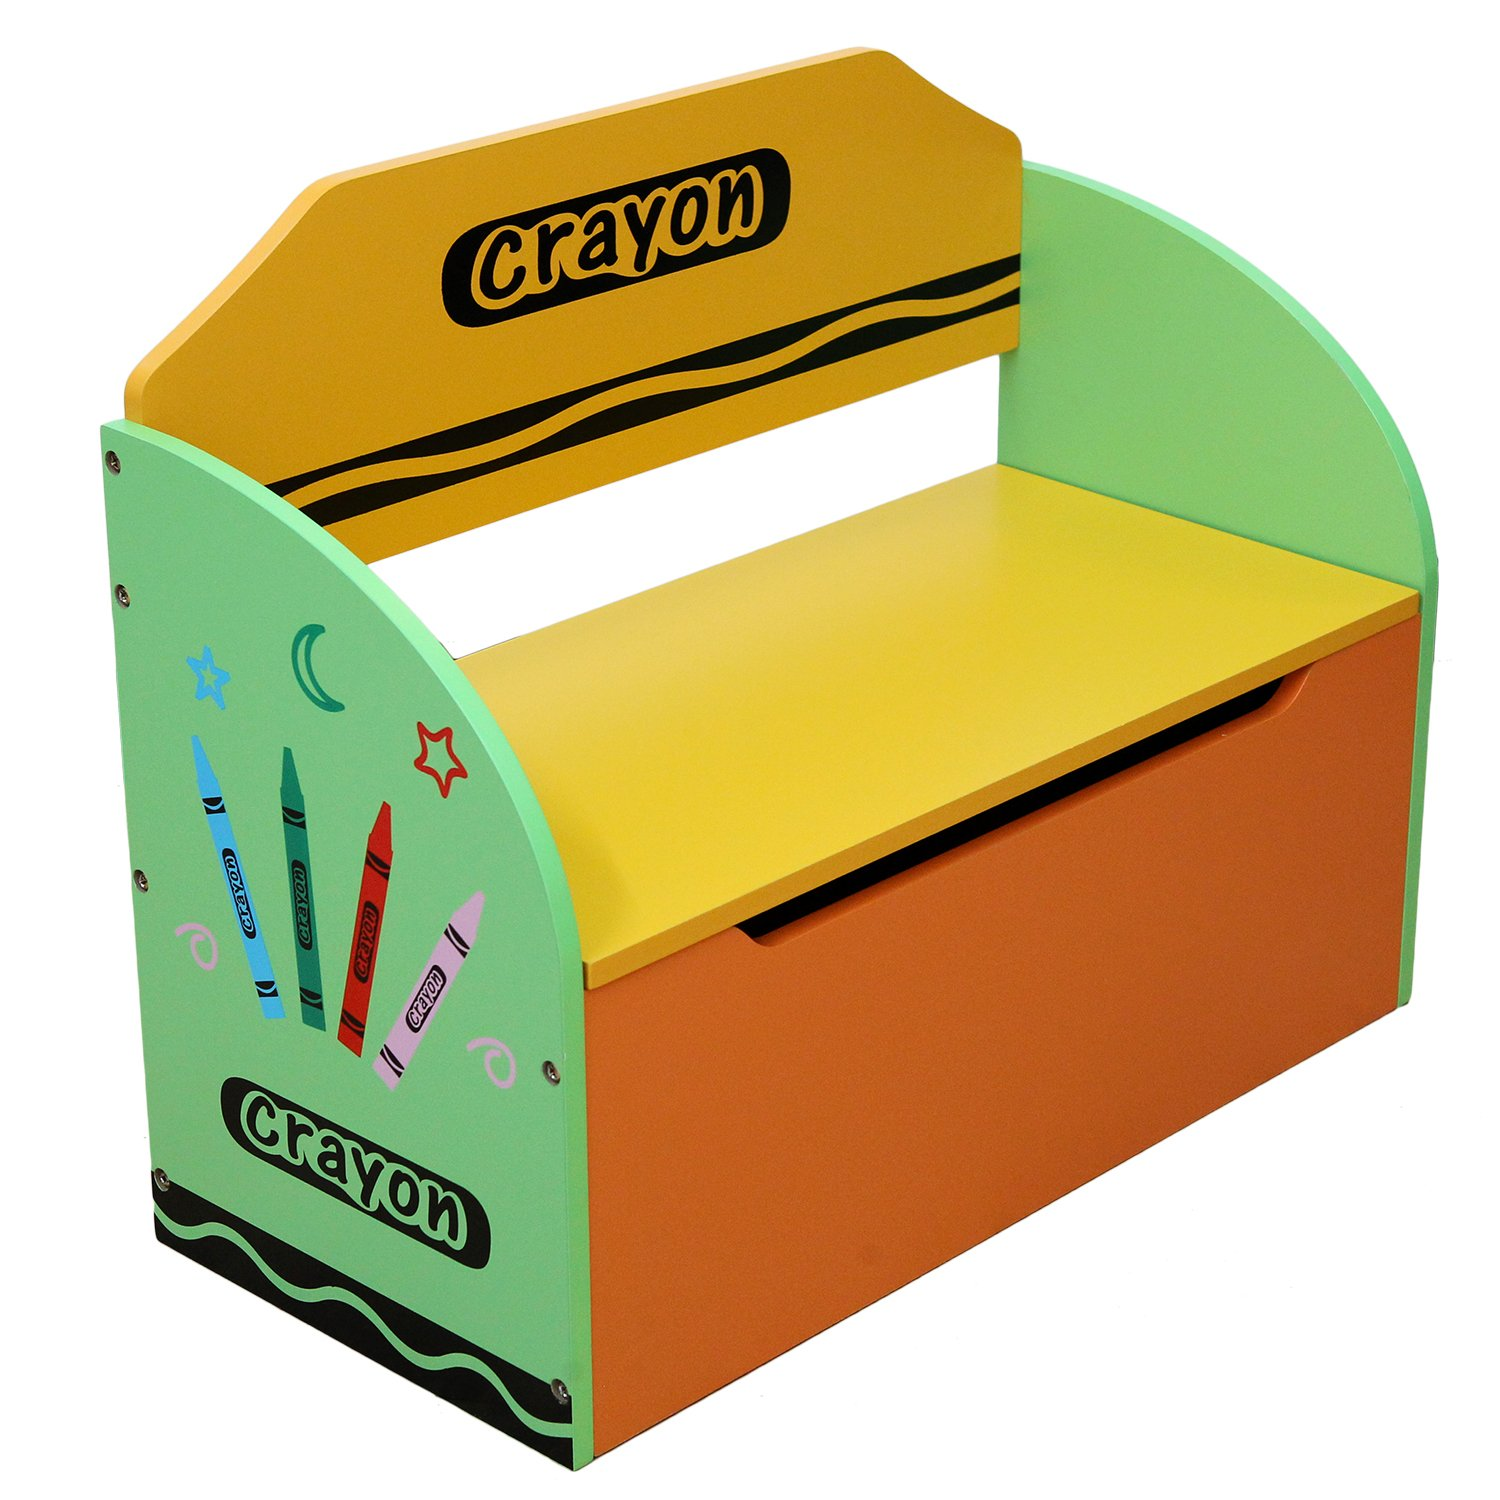 Kiddi Style Children's Wooden Toy Storage Box and Bench Bebe Style PCR1TB